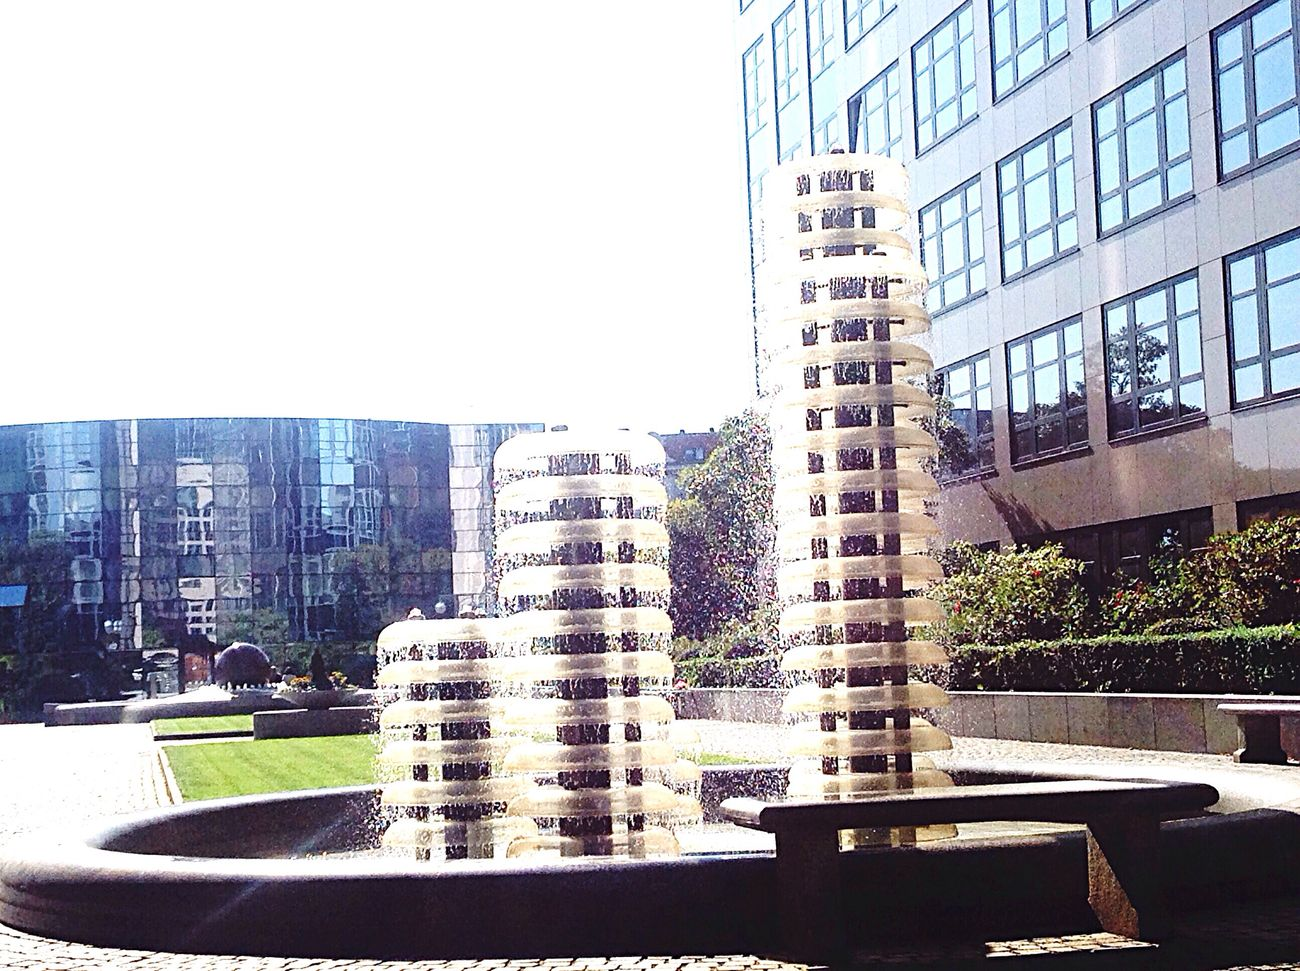 Fountain Fountains Fountain_collection Fountain Fun Fountain Plaza Fountaine Modern Residential Building Photos Berlin Photography Photo Architecture Photograph